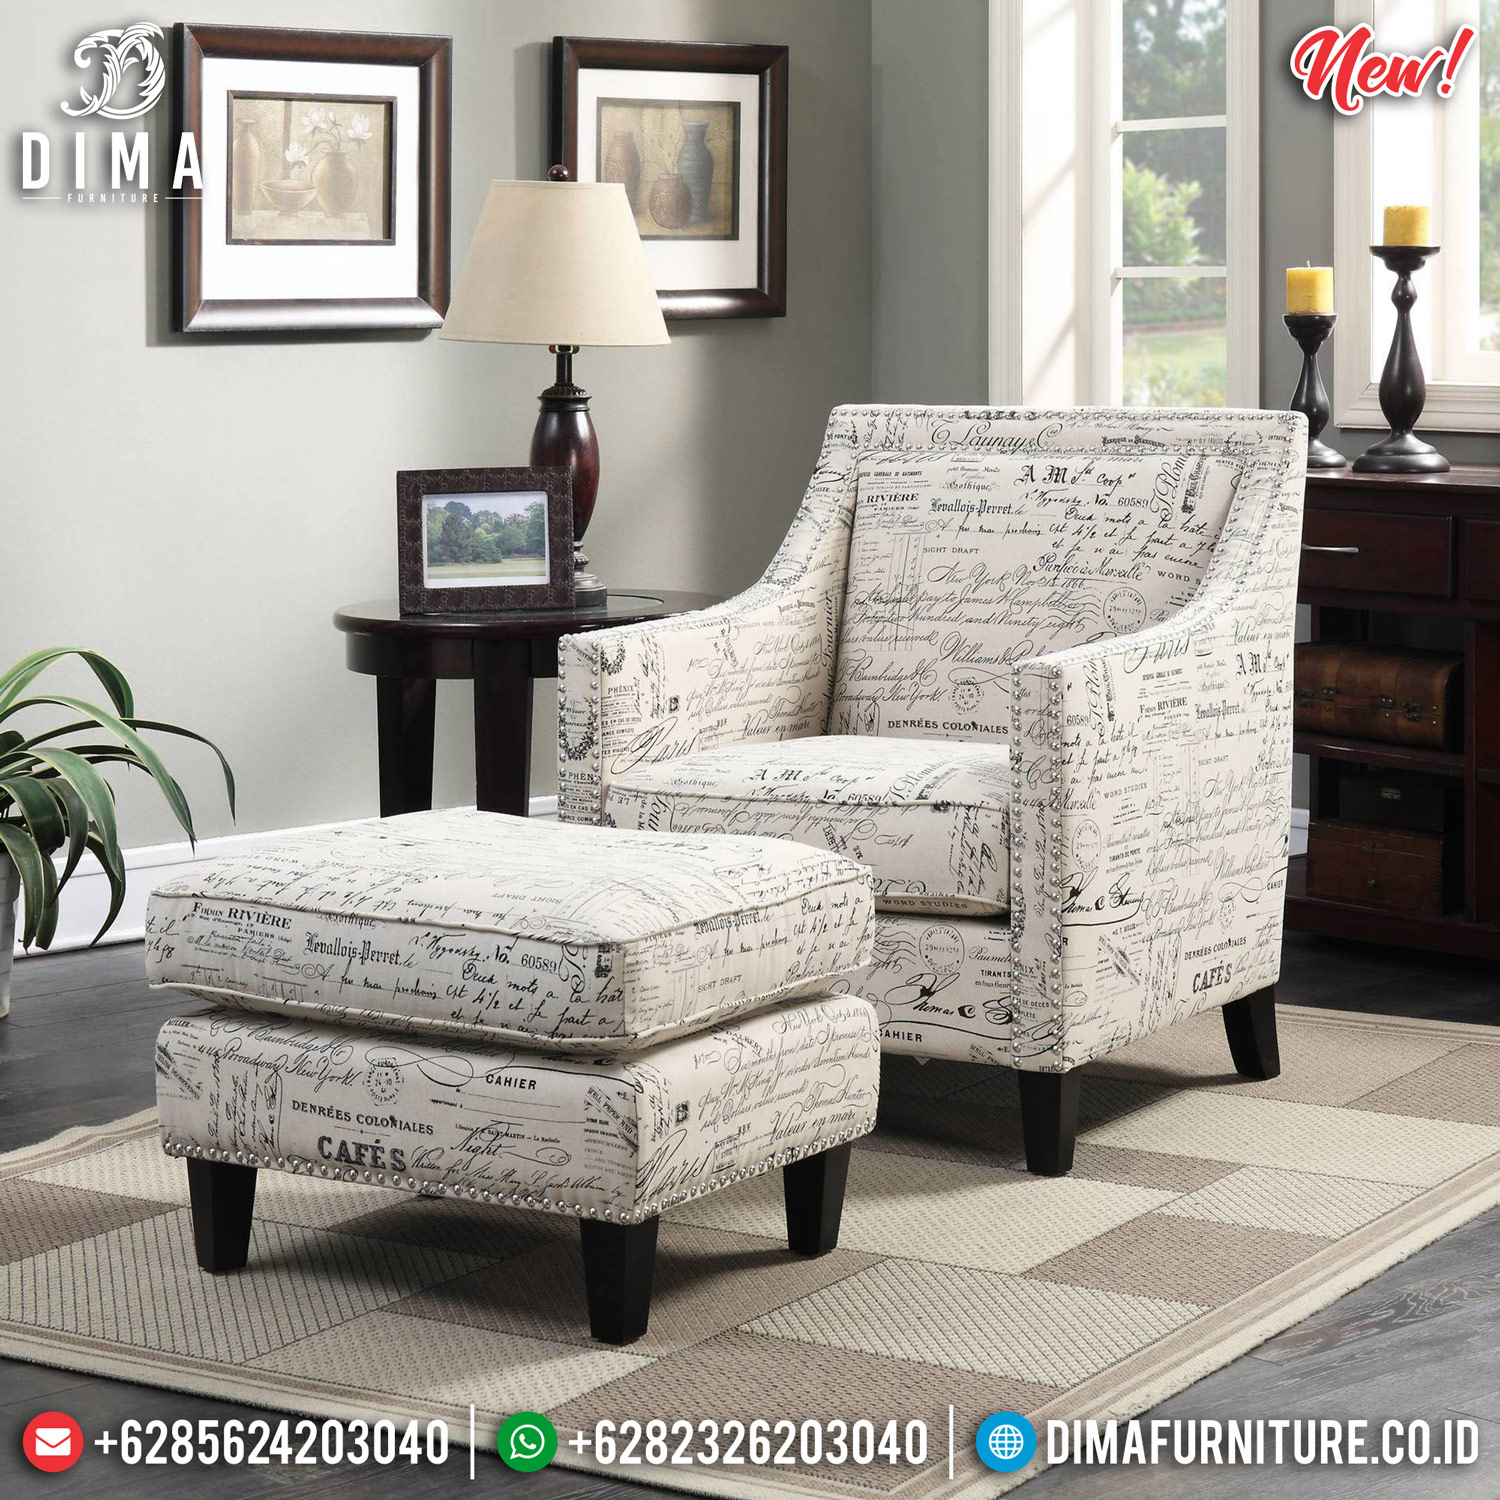 New Model Sofa Minimalist Softly Foam, Sofa Santai Minimalis Jepara MMJ-0817